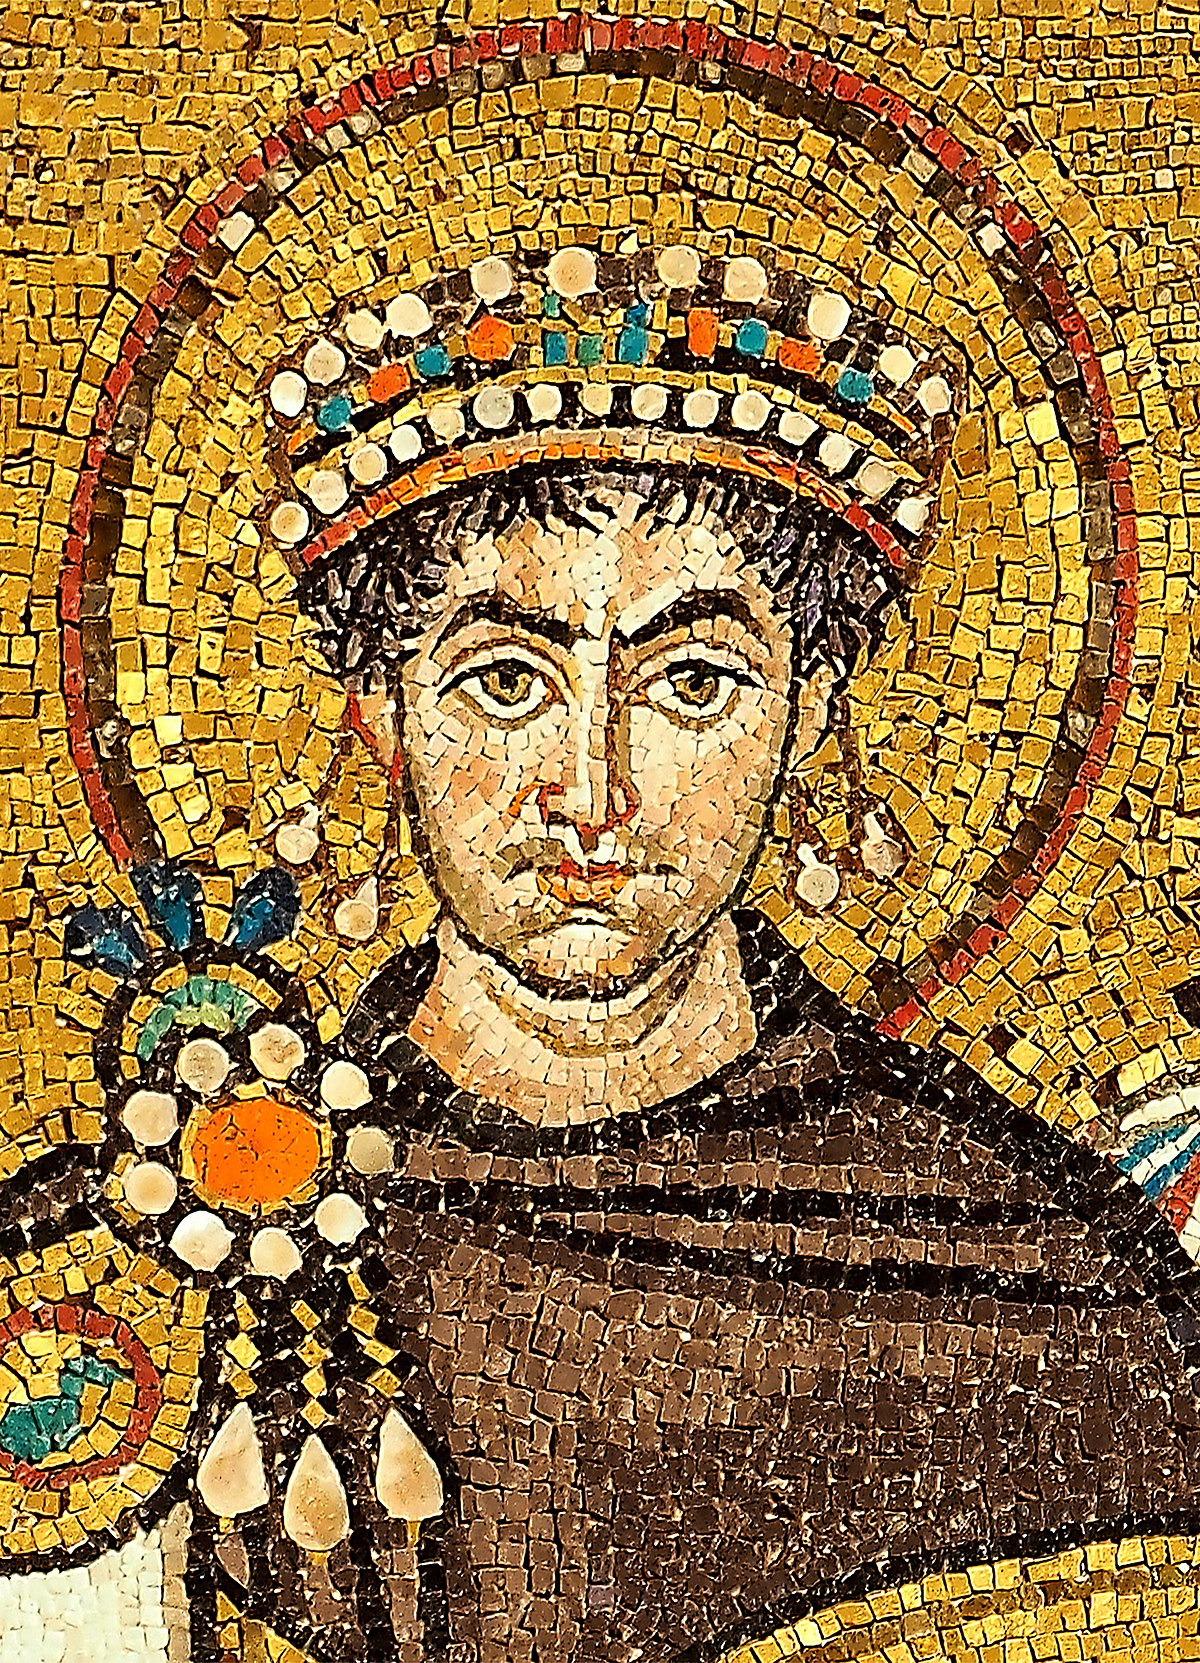 justinian and the byzantine empire The byzantine empire had been in decline for centuries and by 1453 the hagia sophia had fallen into disrepair, notes researcher elisabeth piltz in a 2005 british archaeological reports series book.